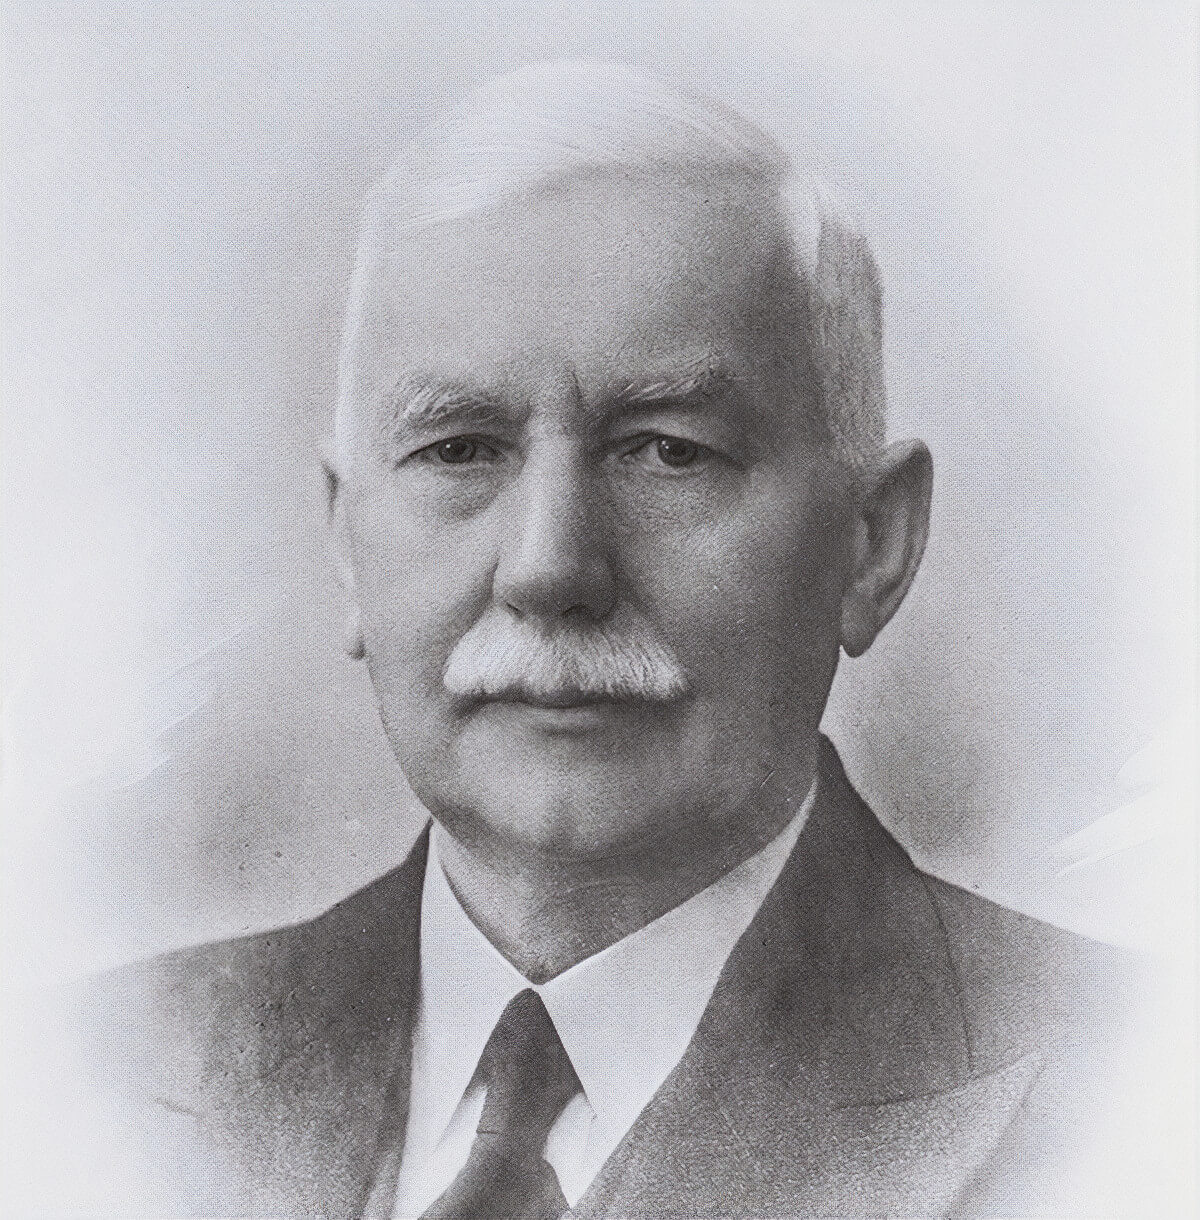 Johan Oscar Smith portrett